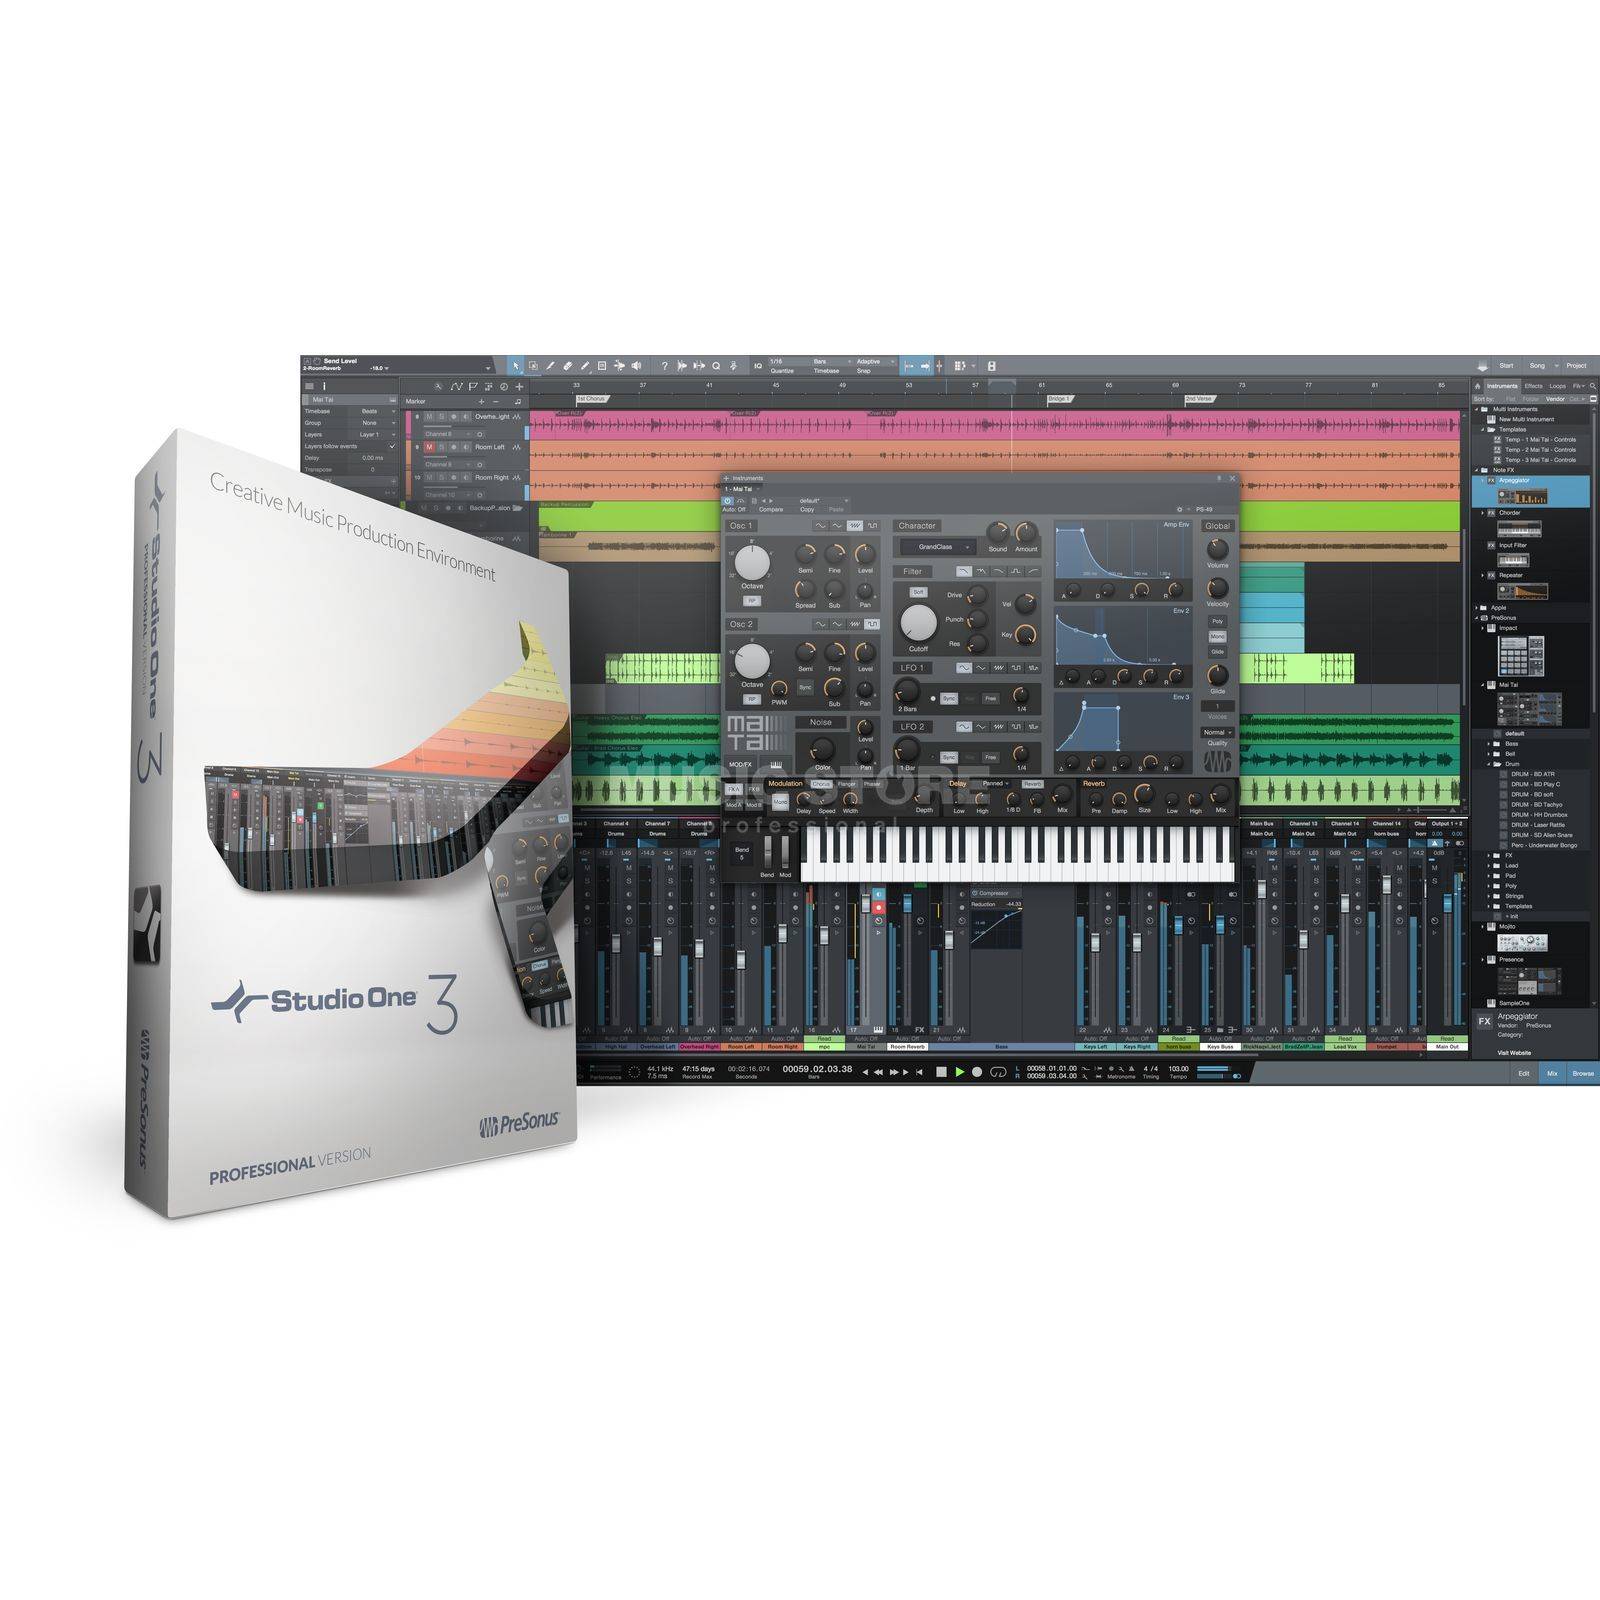 Presonus Studio One 3 PRO (Art3 UPG) Boxed Version Image du produit